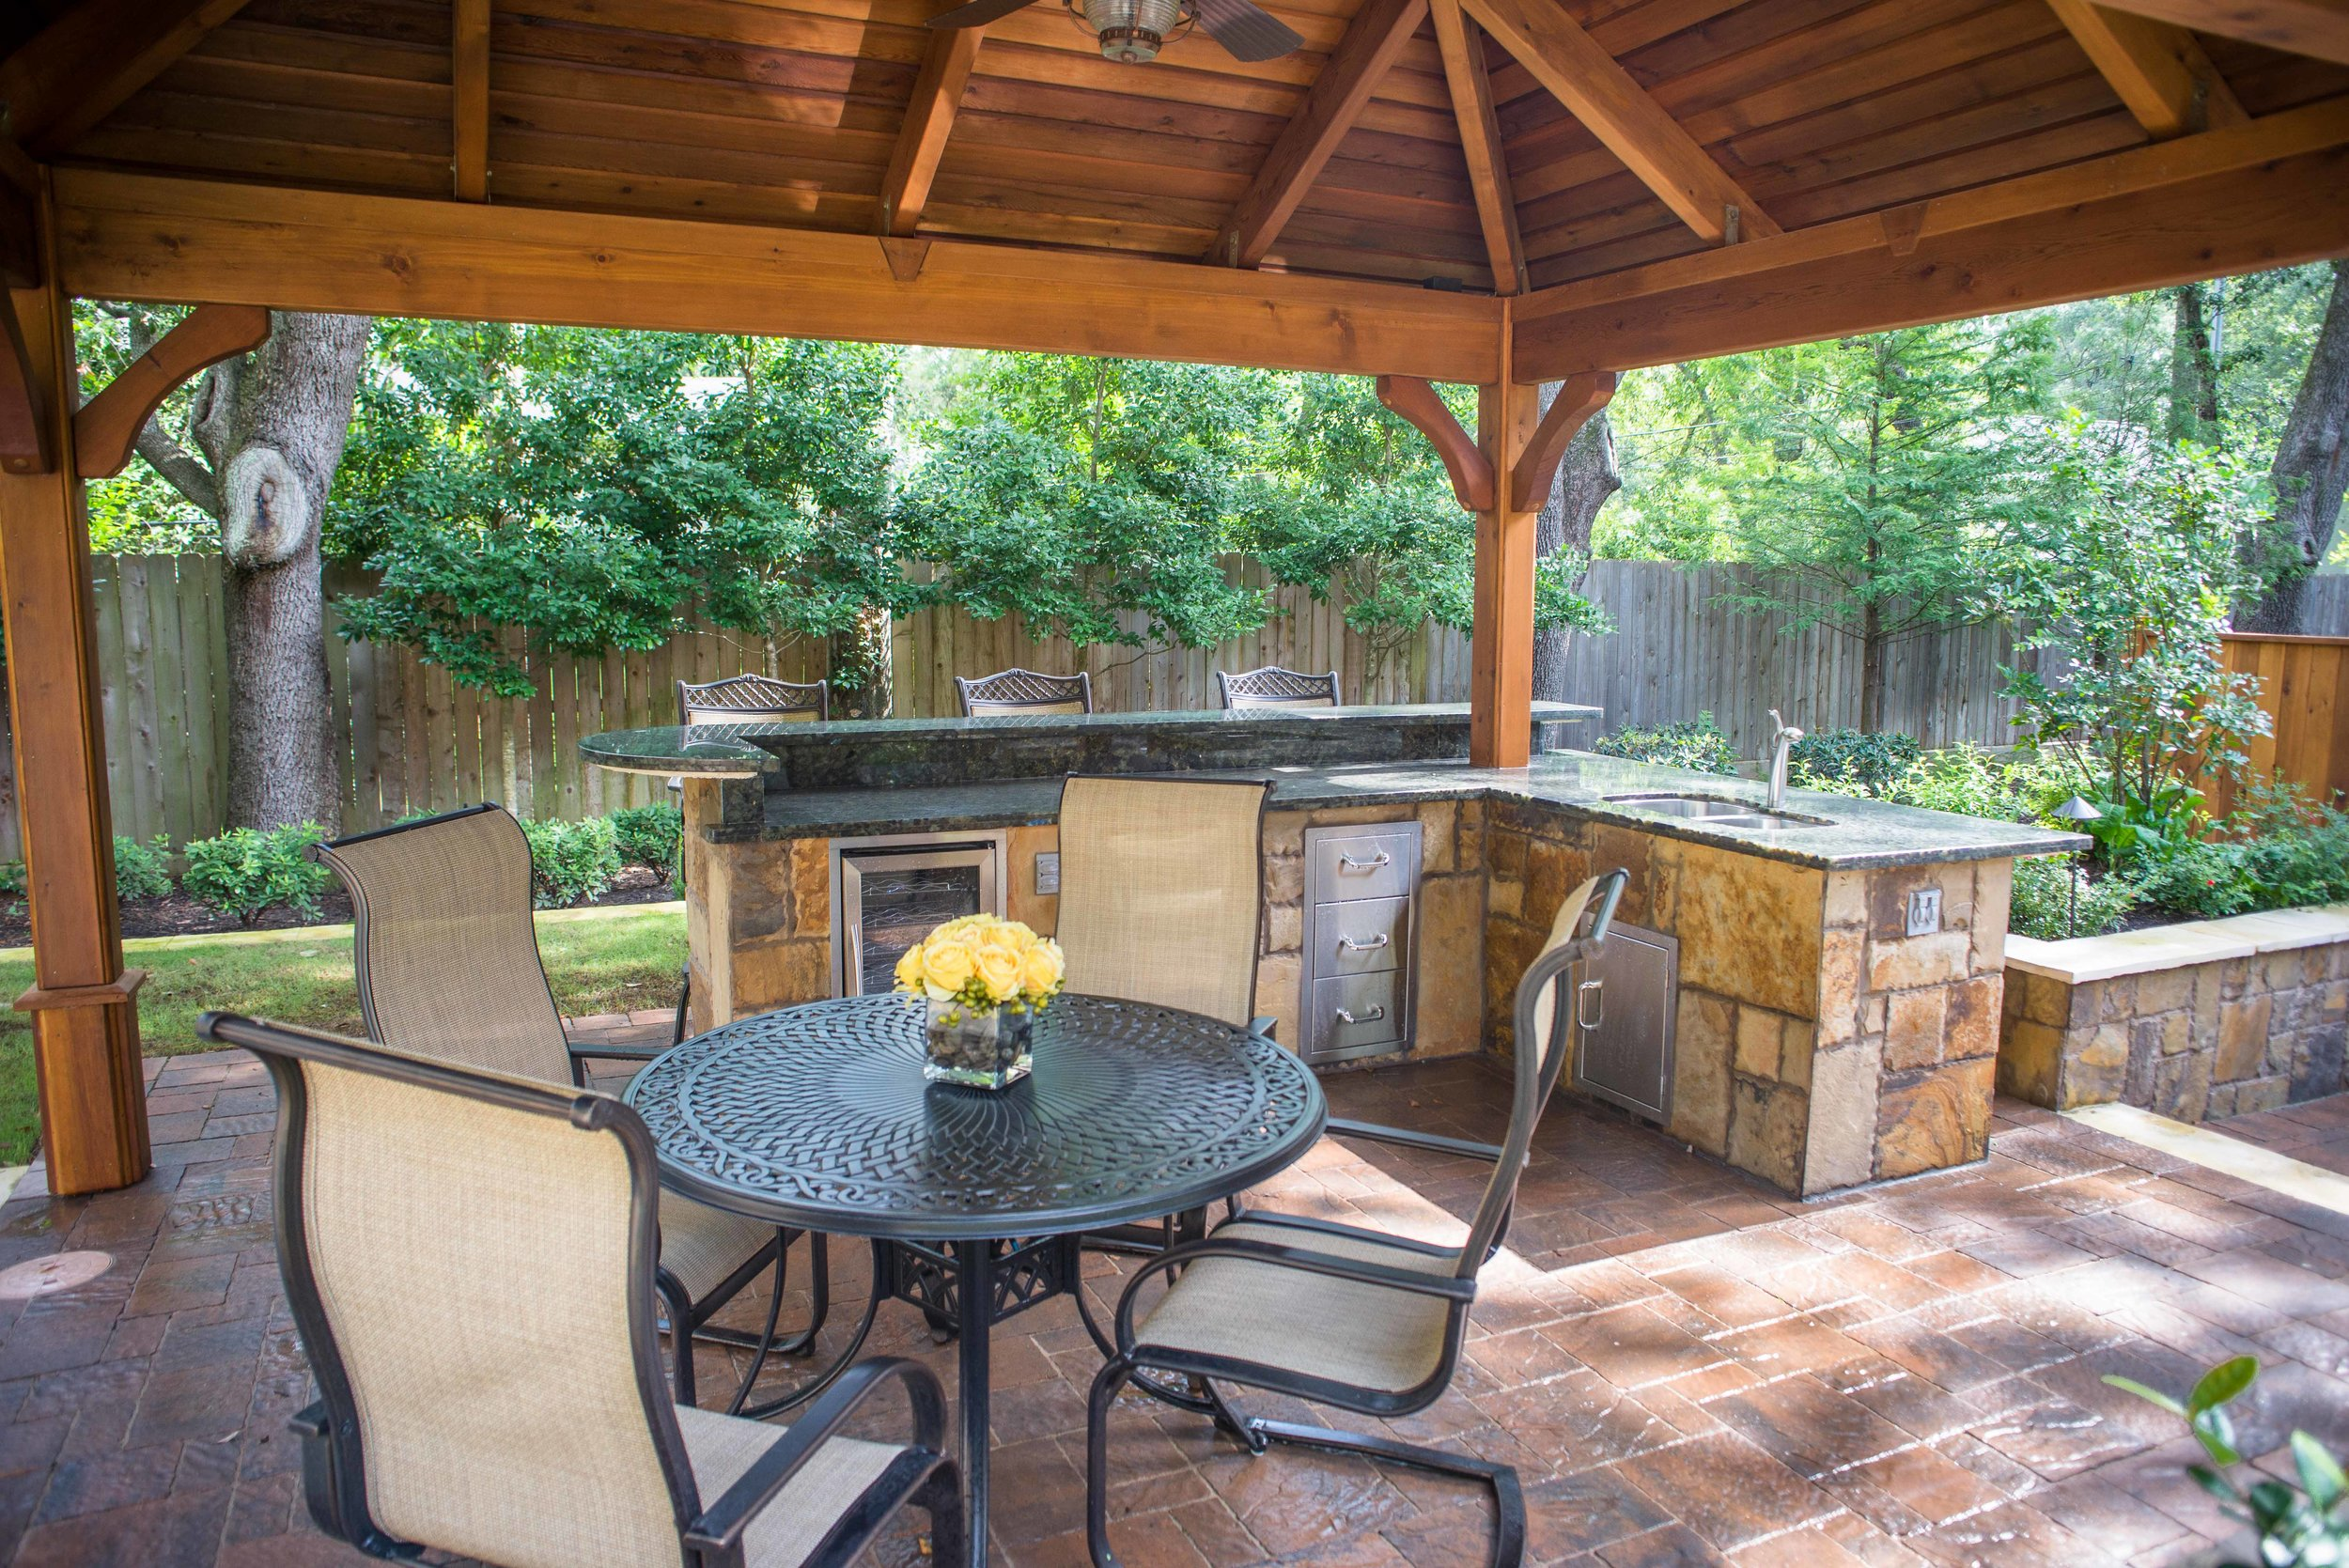 Mirror Lake Outdoor Kitchens 8.jpg